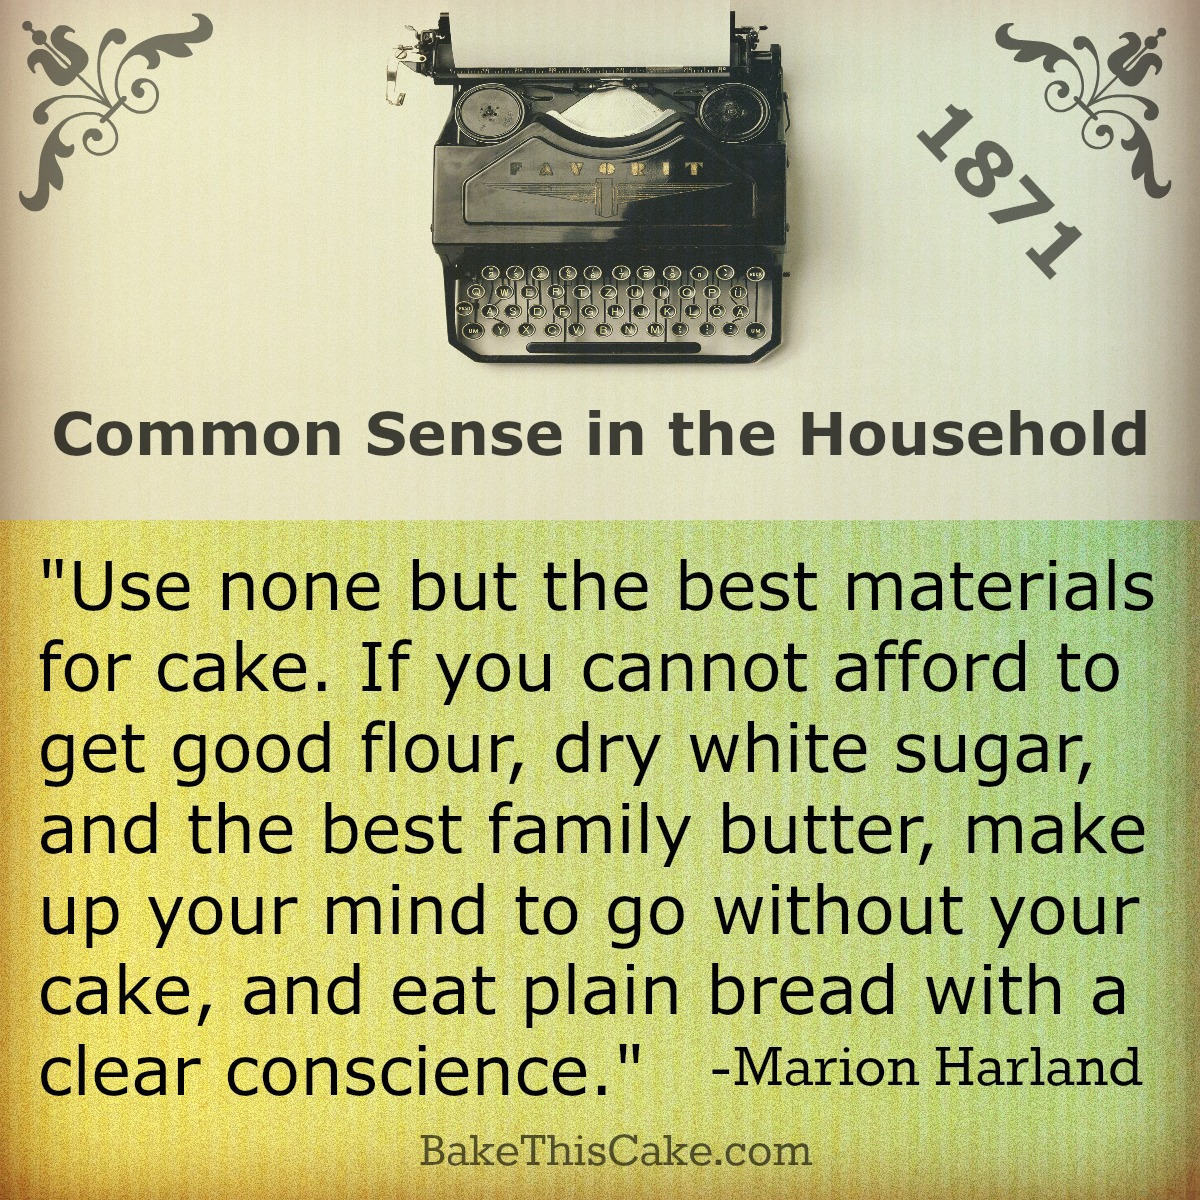 Marion Harland cake quote 1870 by bake this cake